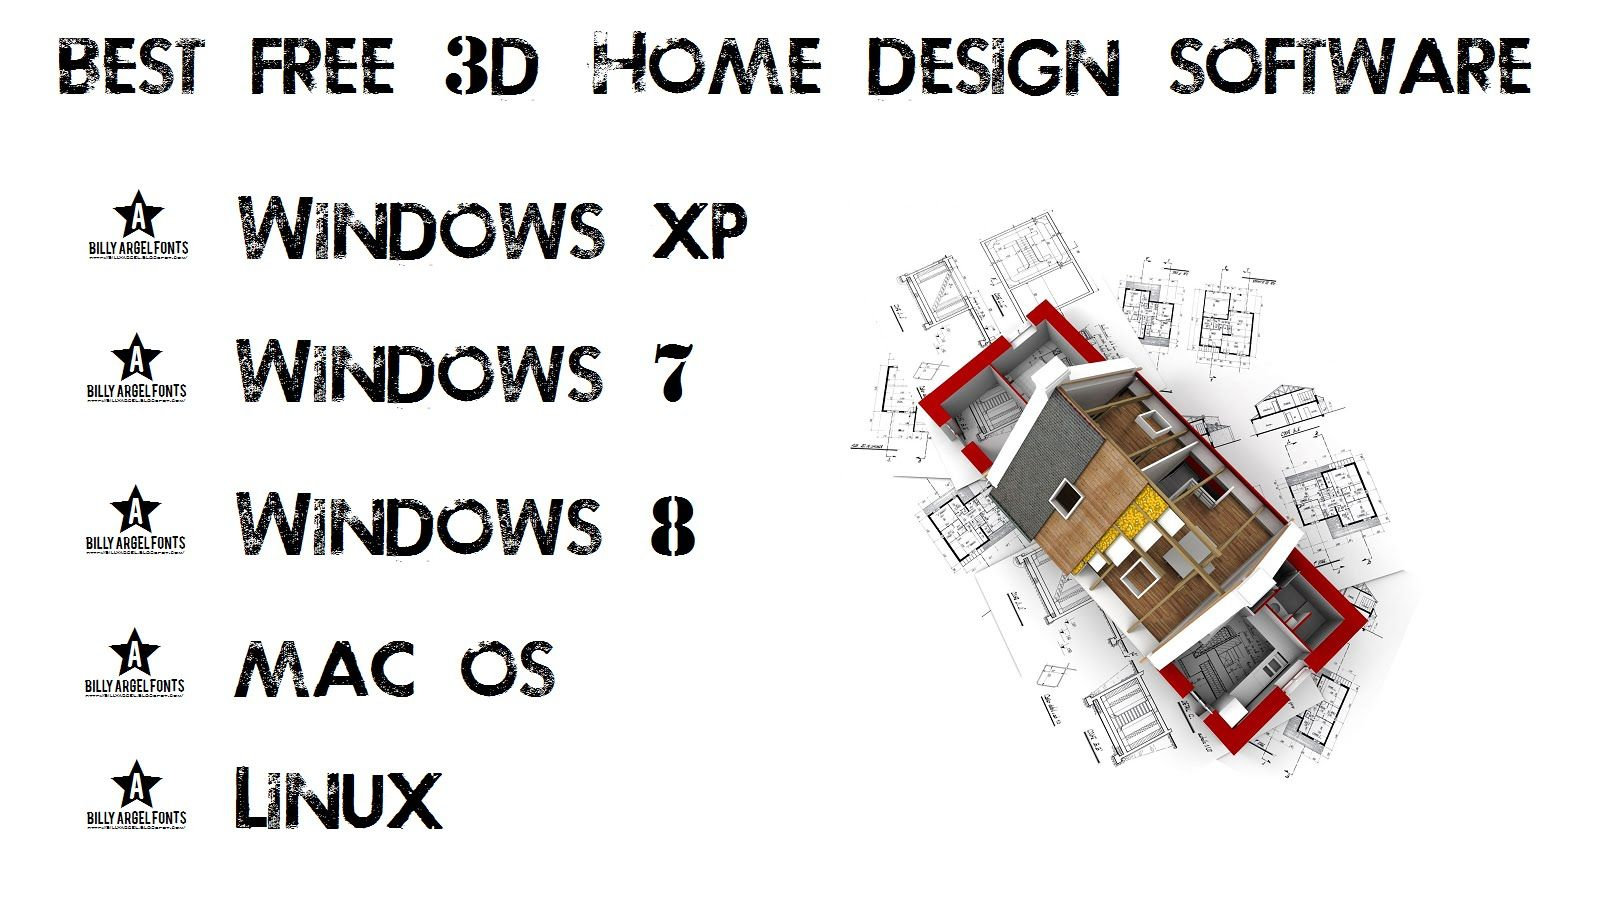 Great free software lots of fun building your dream house also brn rh pinterest